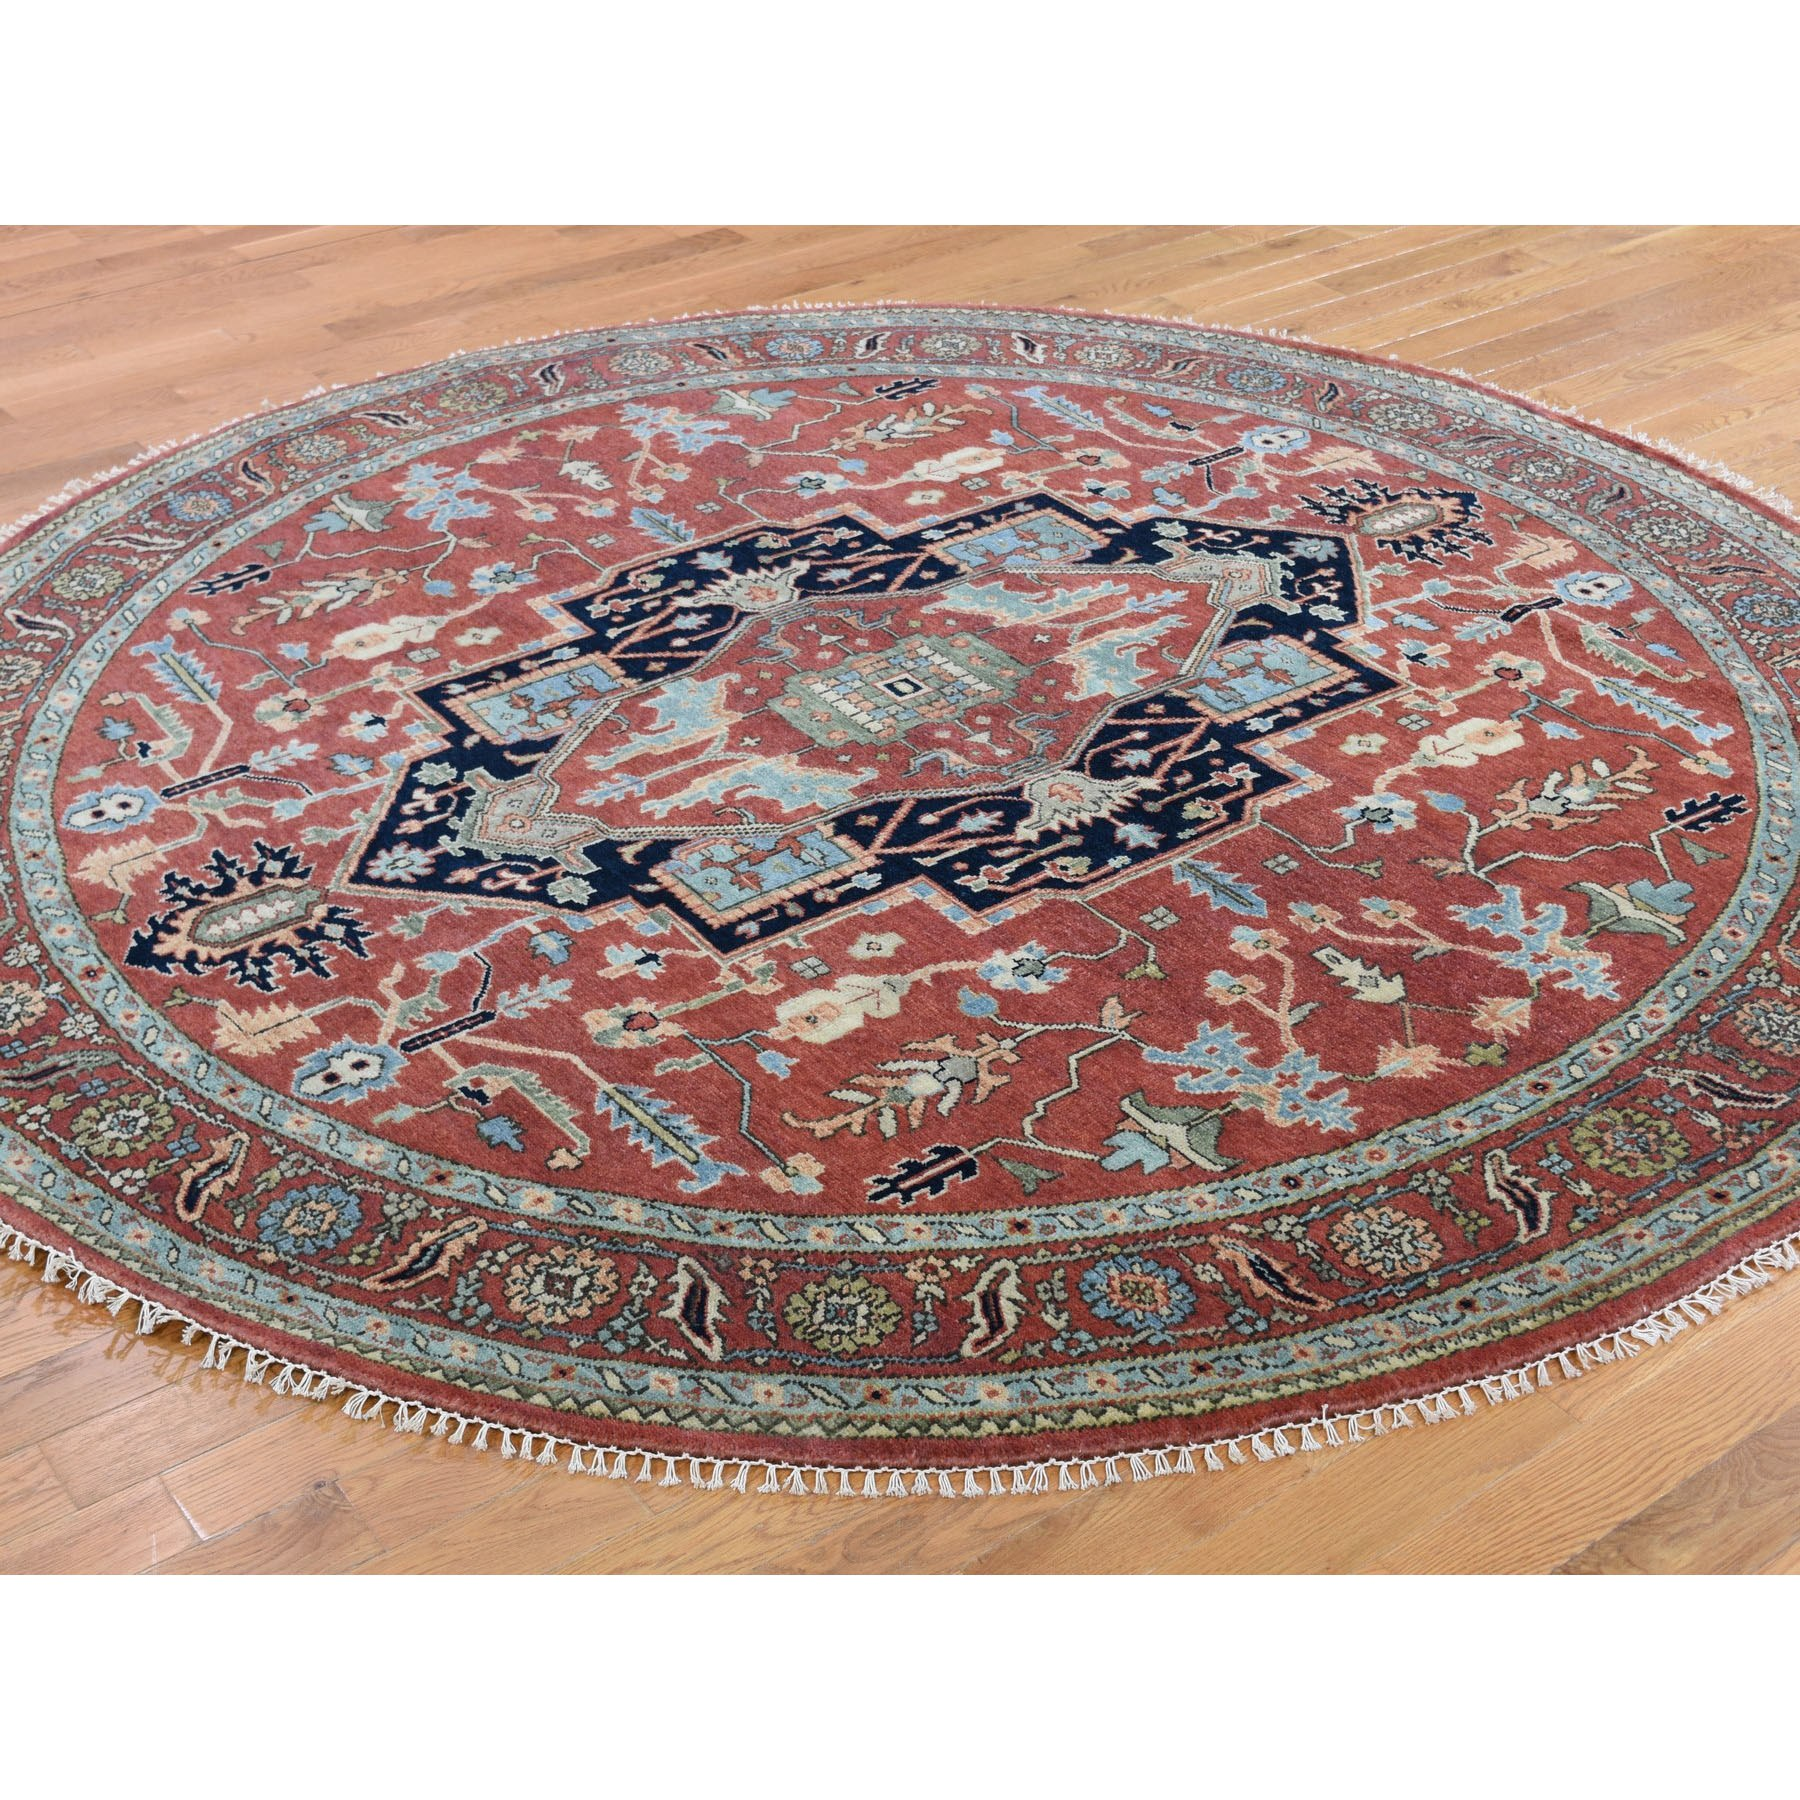 """7'8""""x7'8"""" Round Red Heriz Revival Pure Wool Hand Knotted Oriental Rug"""